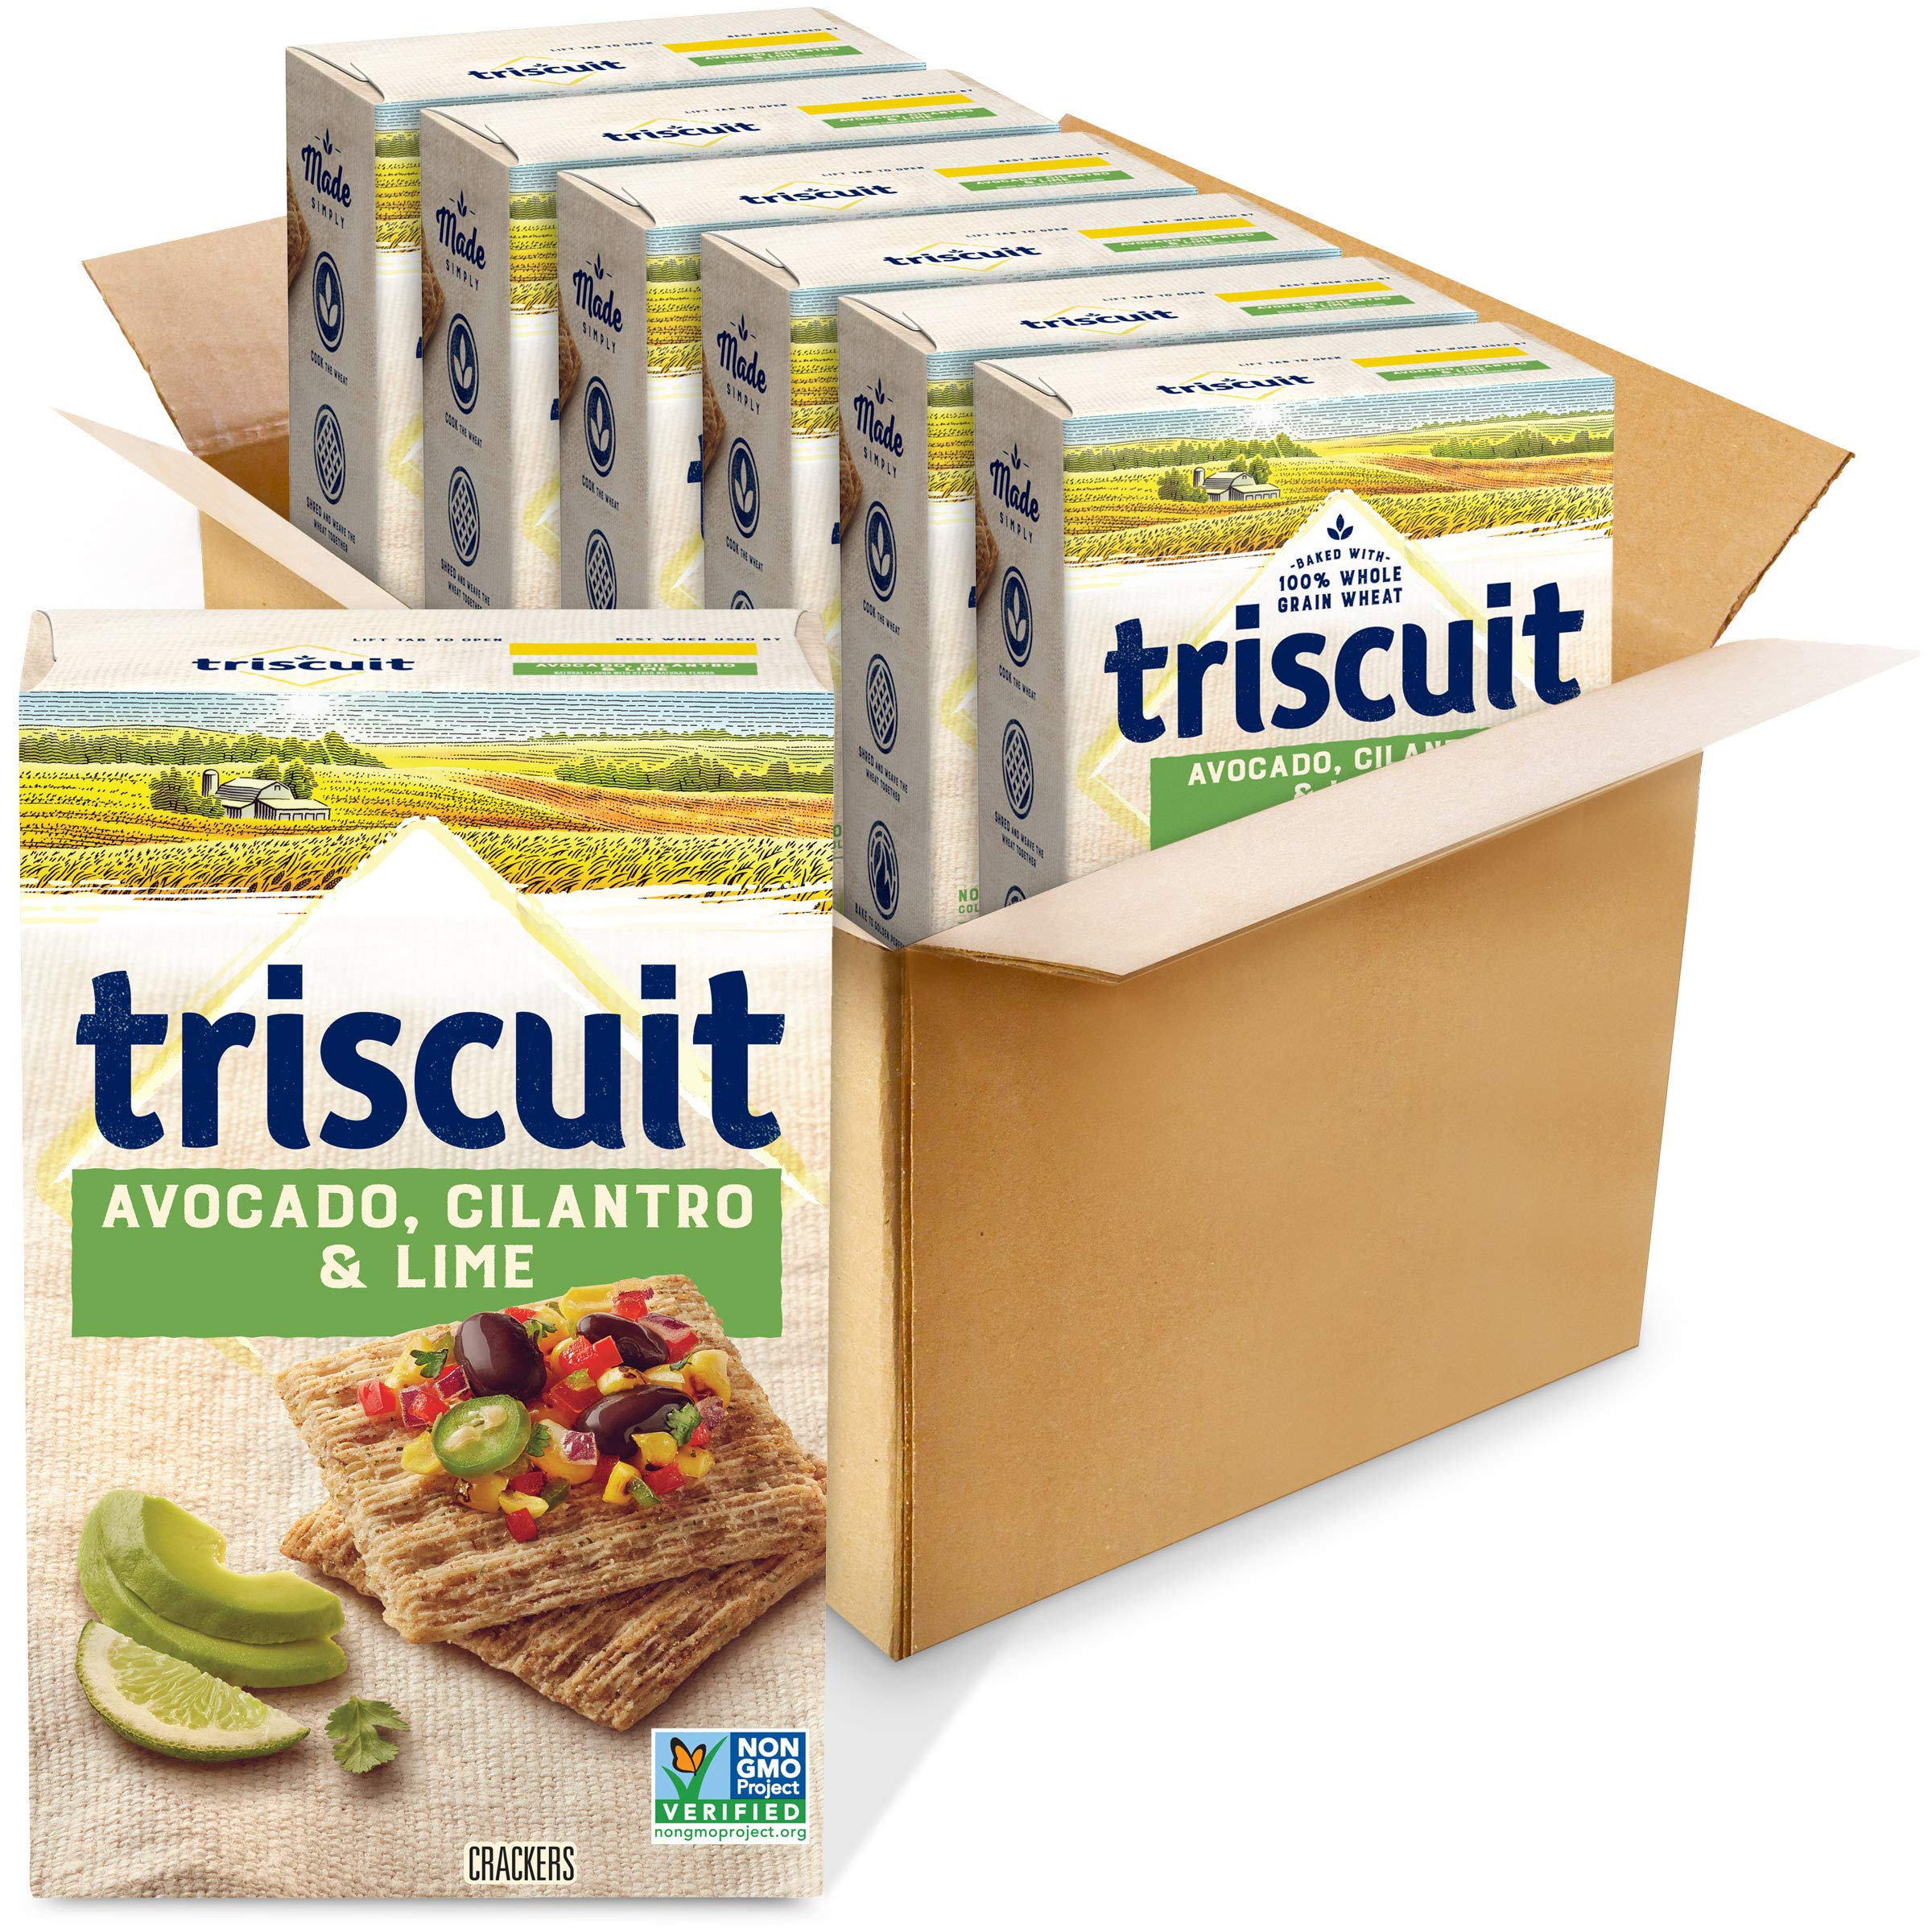 Triscuit Avocado, Cilantro, & Lime Crackers, Non-GMO, 8.5 Ounce (Pack of 6)